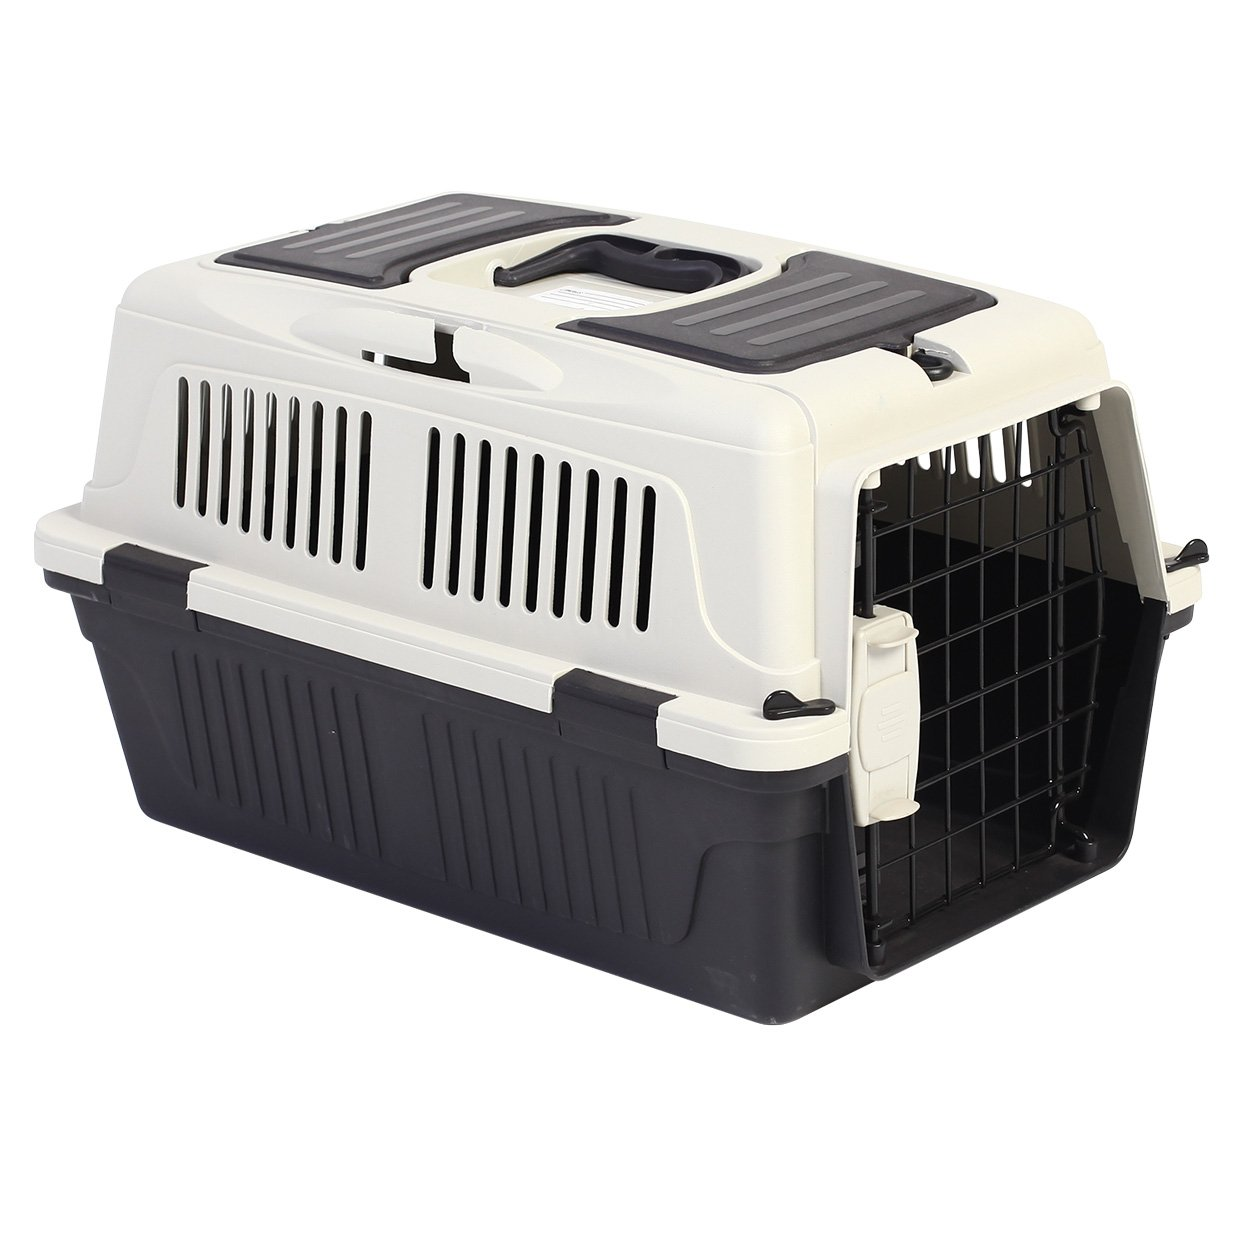 Animal Treasures PS7906 Deluxe Dog Kennel, X-Small/19, Gray/White